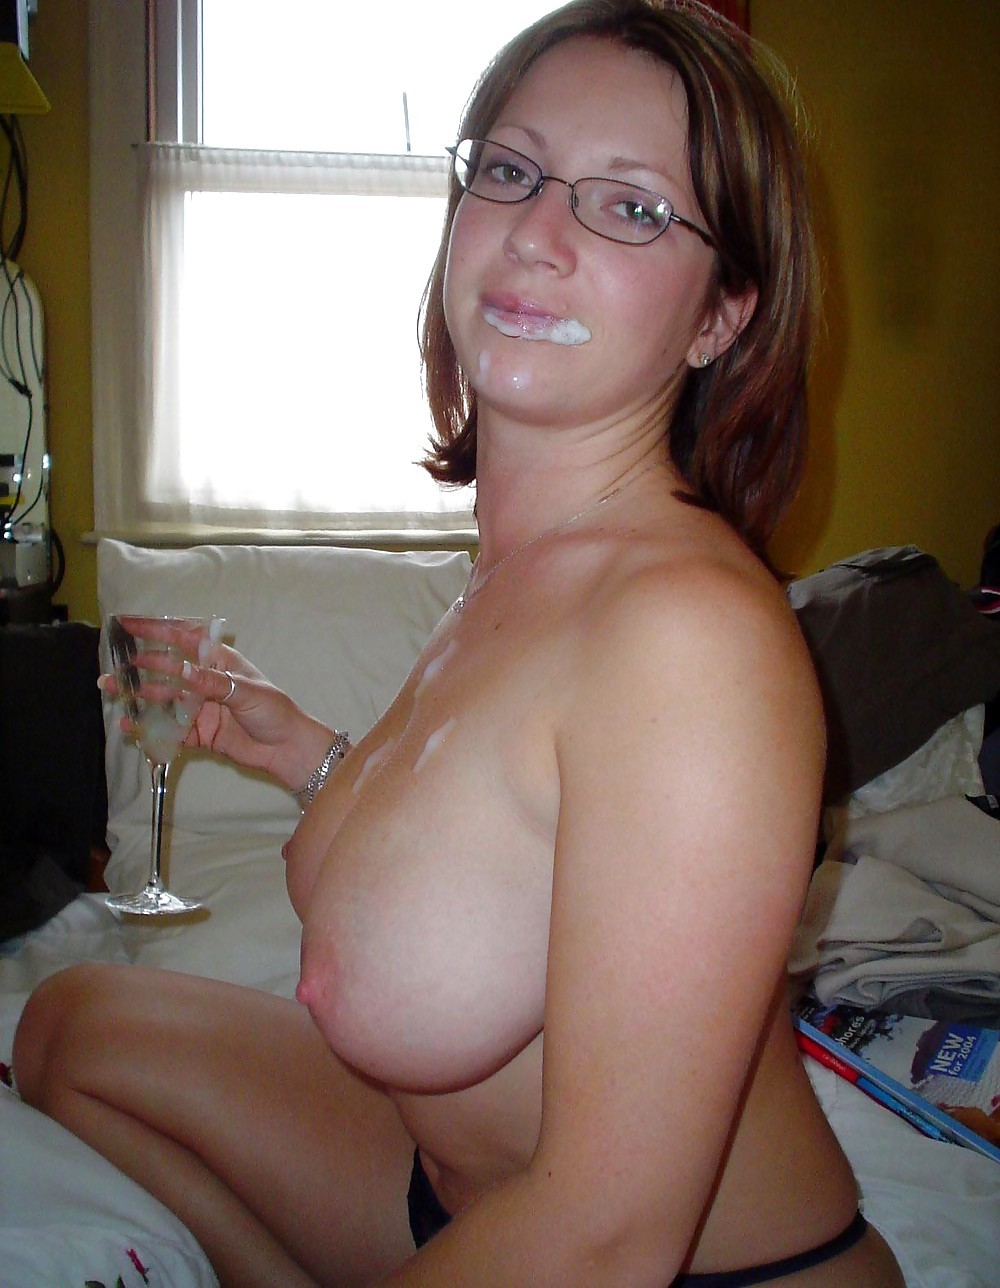 mature wifes amateur topless photos busty